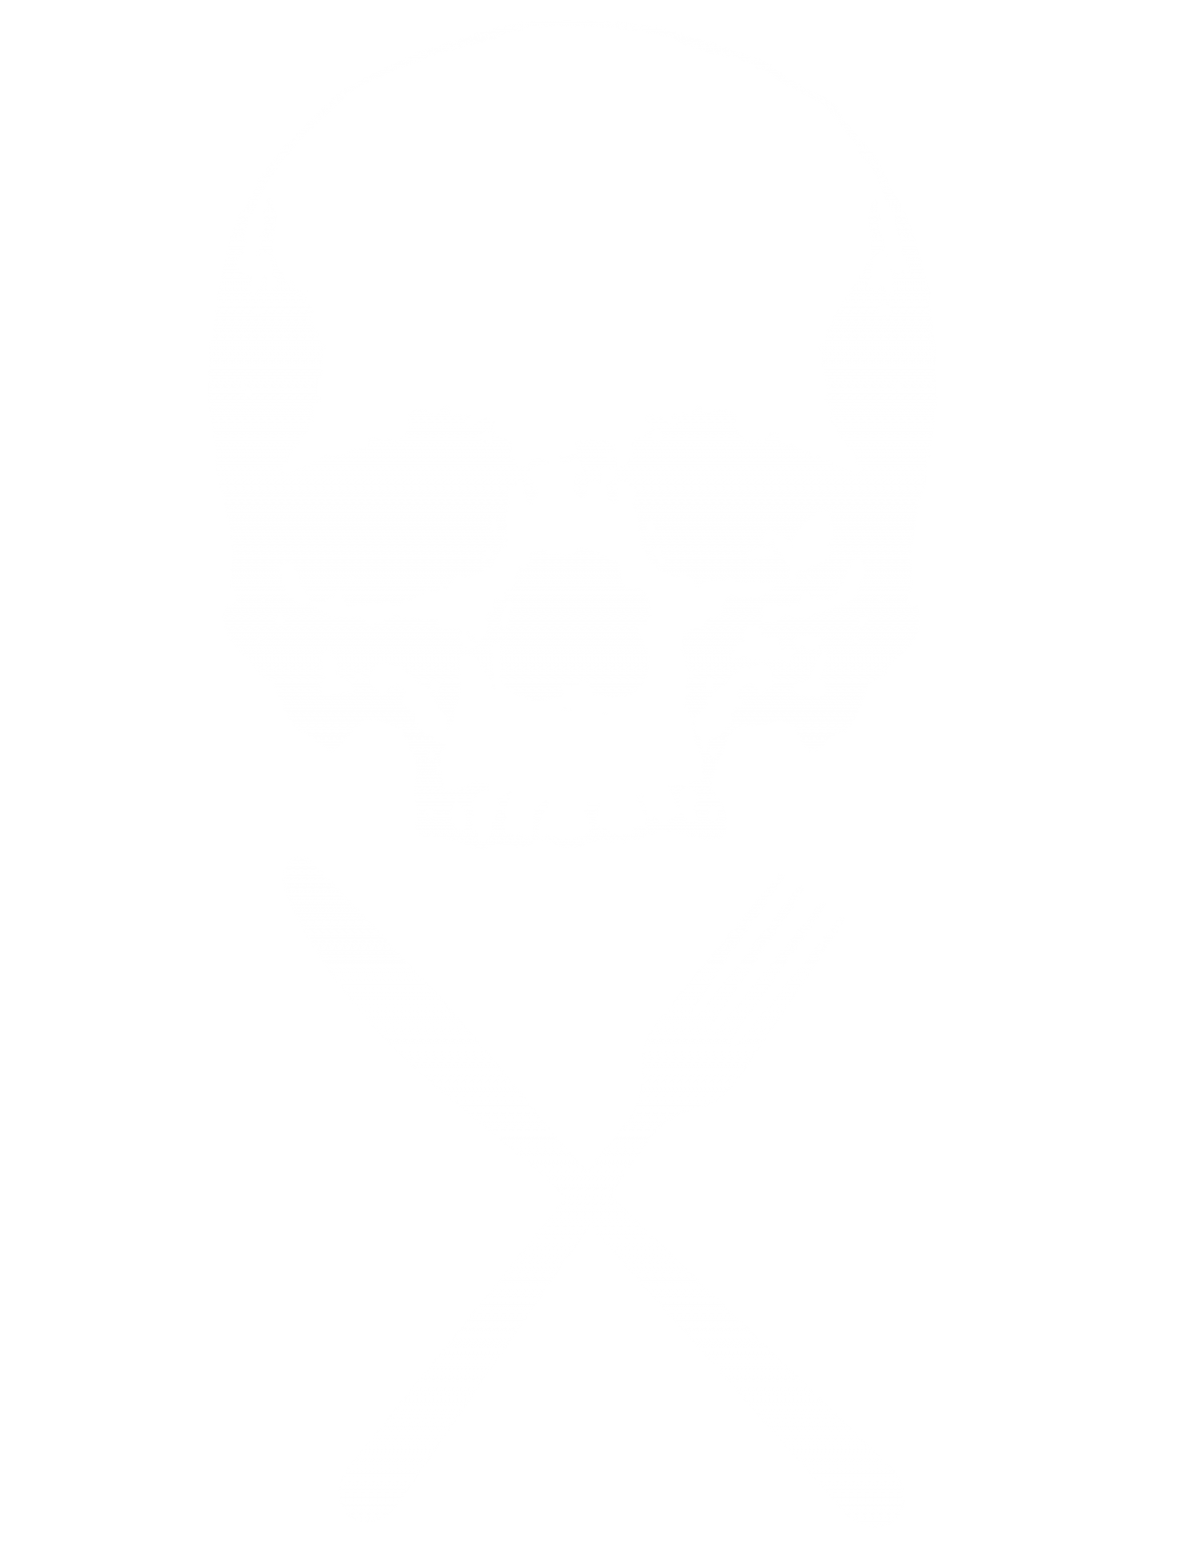 EAT THE DEAD – HALLOWEEN FOOD AND HORROR RECIPES